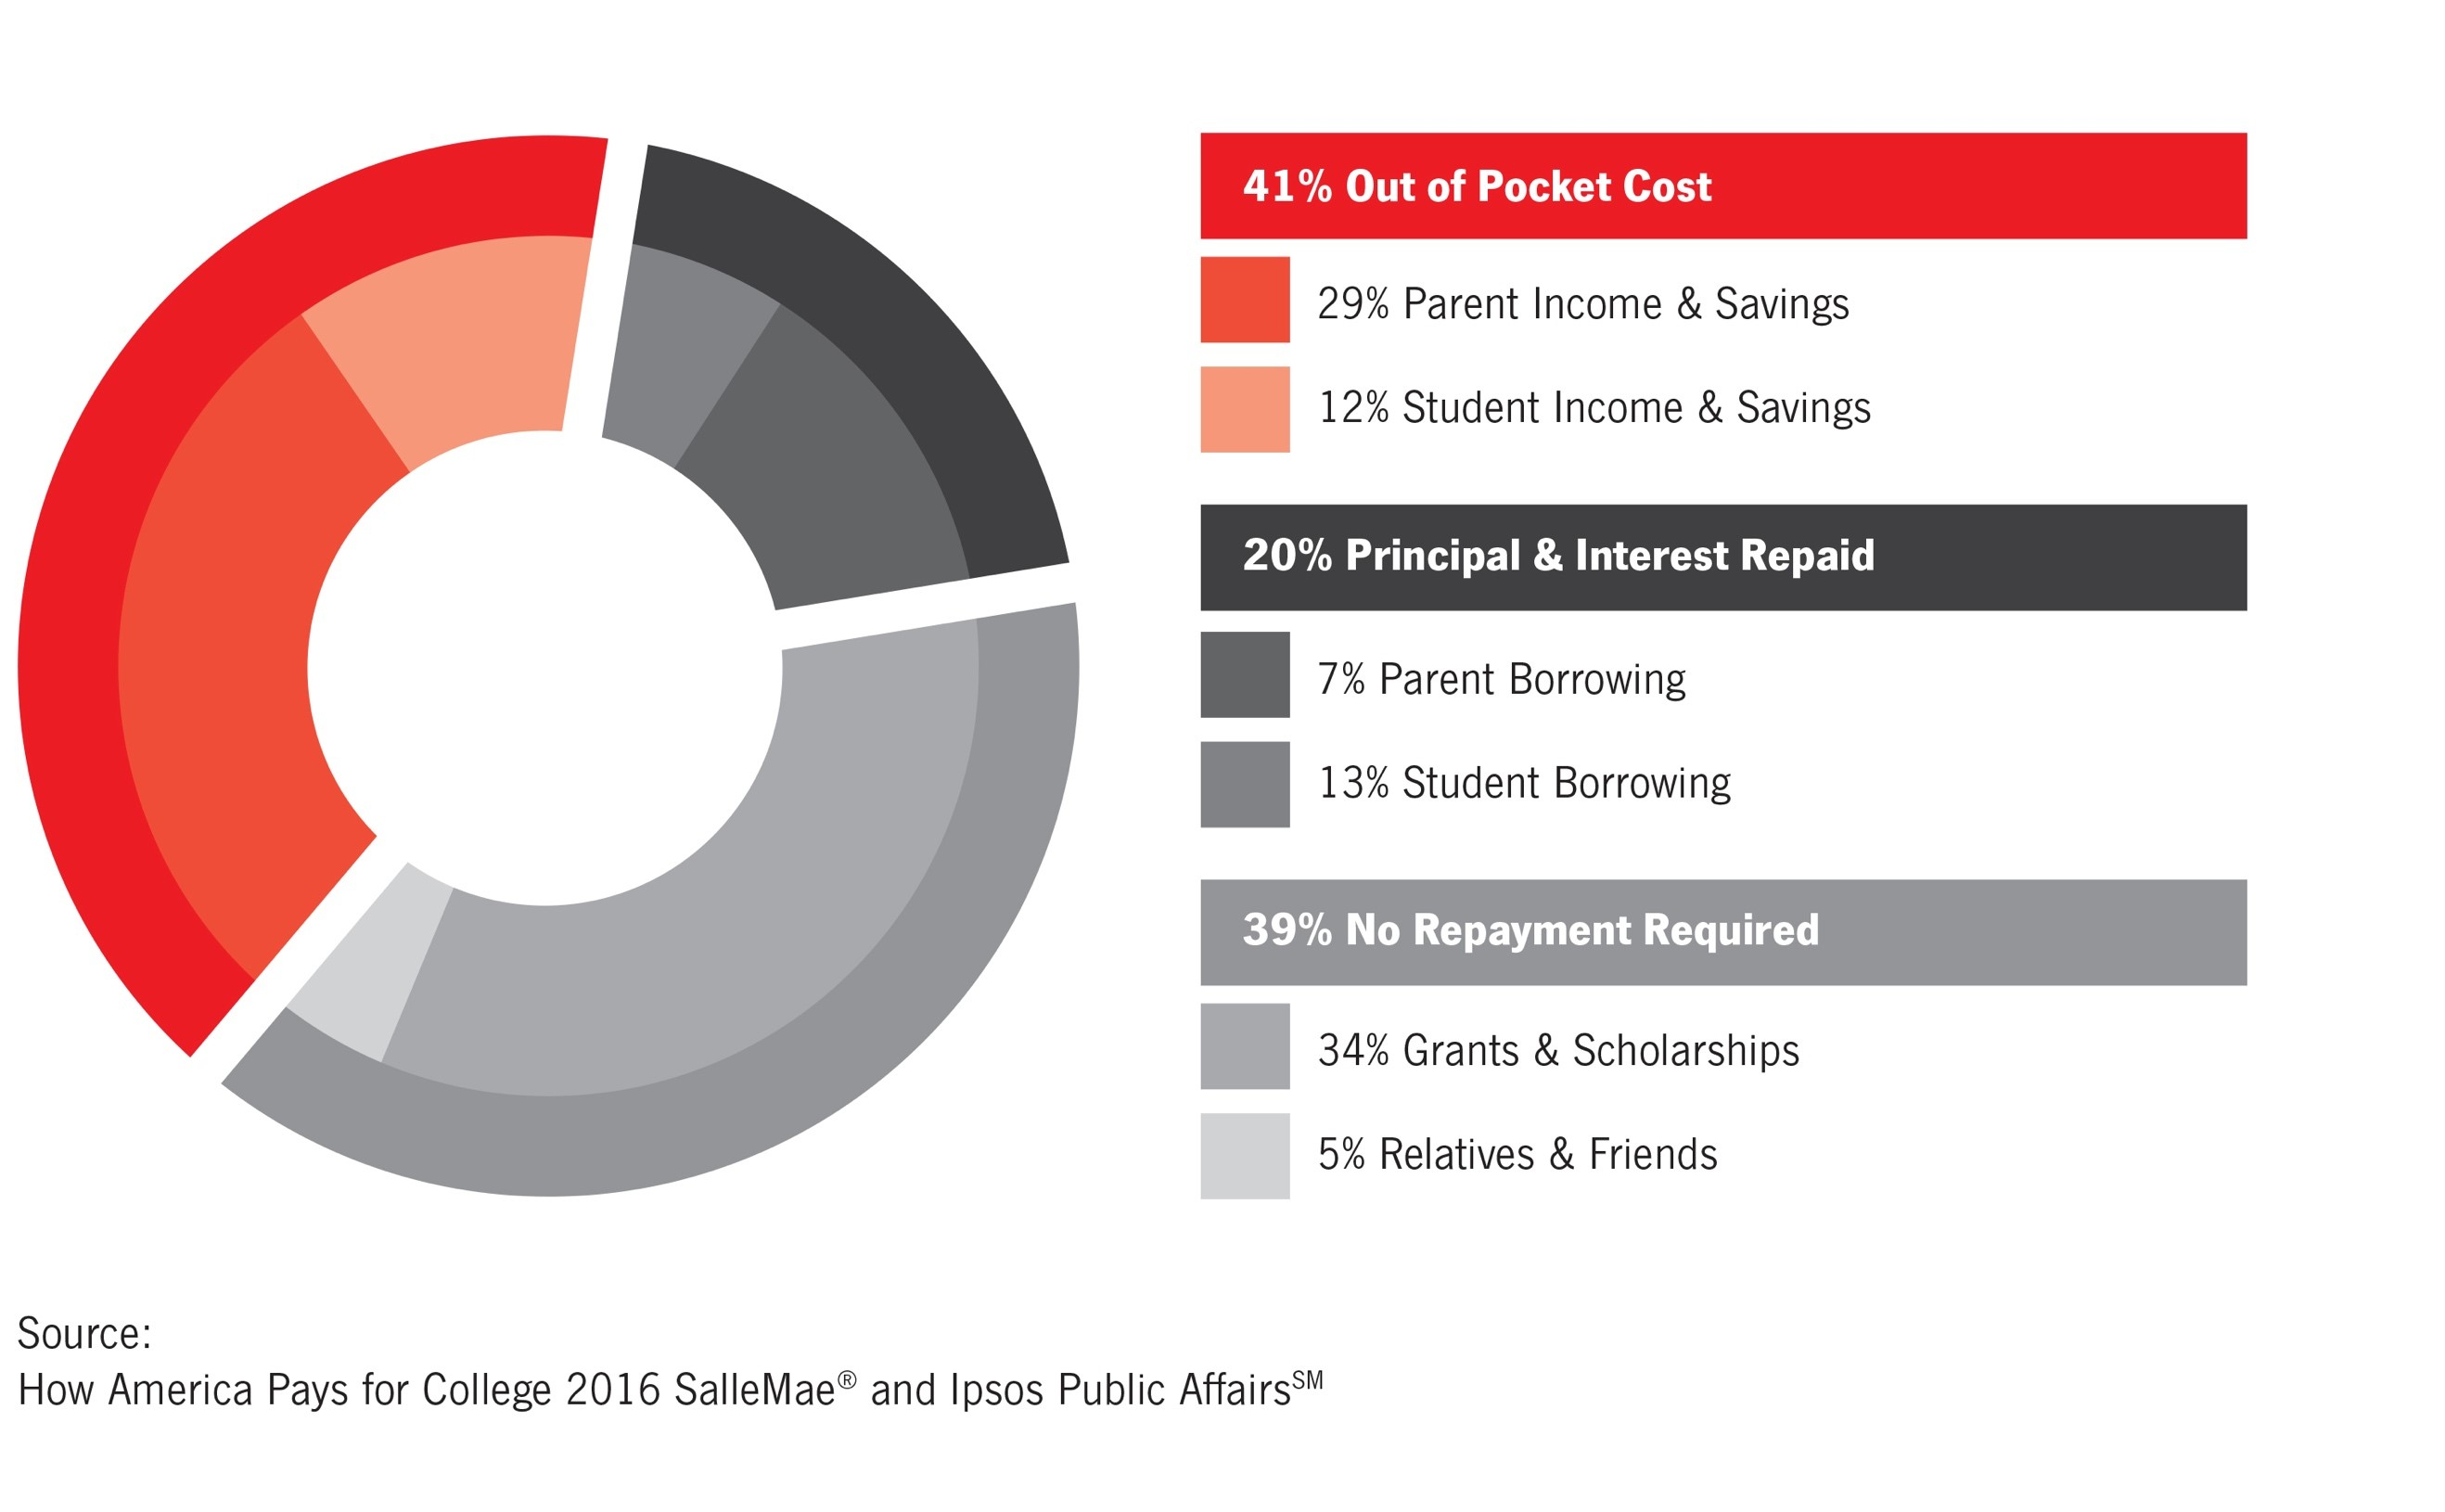 Bar graph illustrates how today, parents often combine their own money with loans, gifts, grants and scholarships. 41% of college is paid by out of pocket costs which include 29% of the parents income and savings and 12% of the student income and savings. 20% of college is paid by principal and interest repaid including 7% parent borrowing and 13% student borrowing. 39% of college is paid by no repayment options, such as 34% from grants and scholarships and 5% from relatives and friends. Source: How America Pays for College 2016 SallieMae® and Iposs Public Affairs™